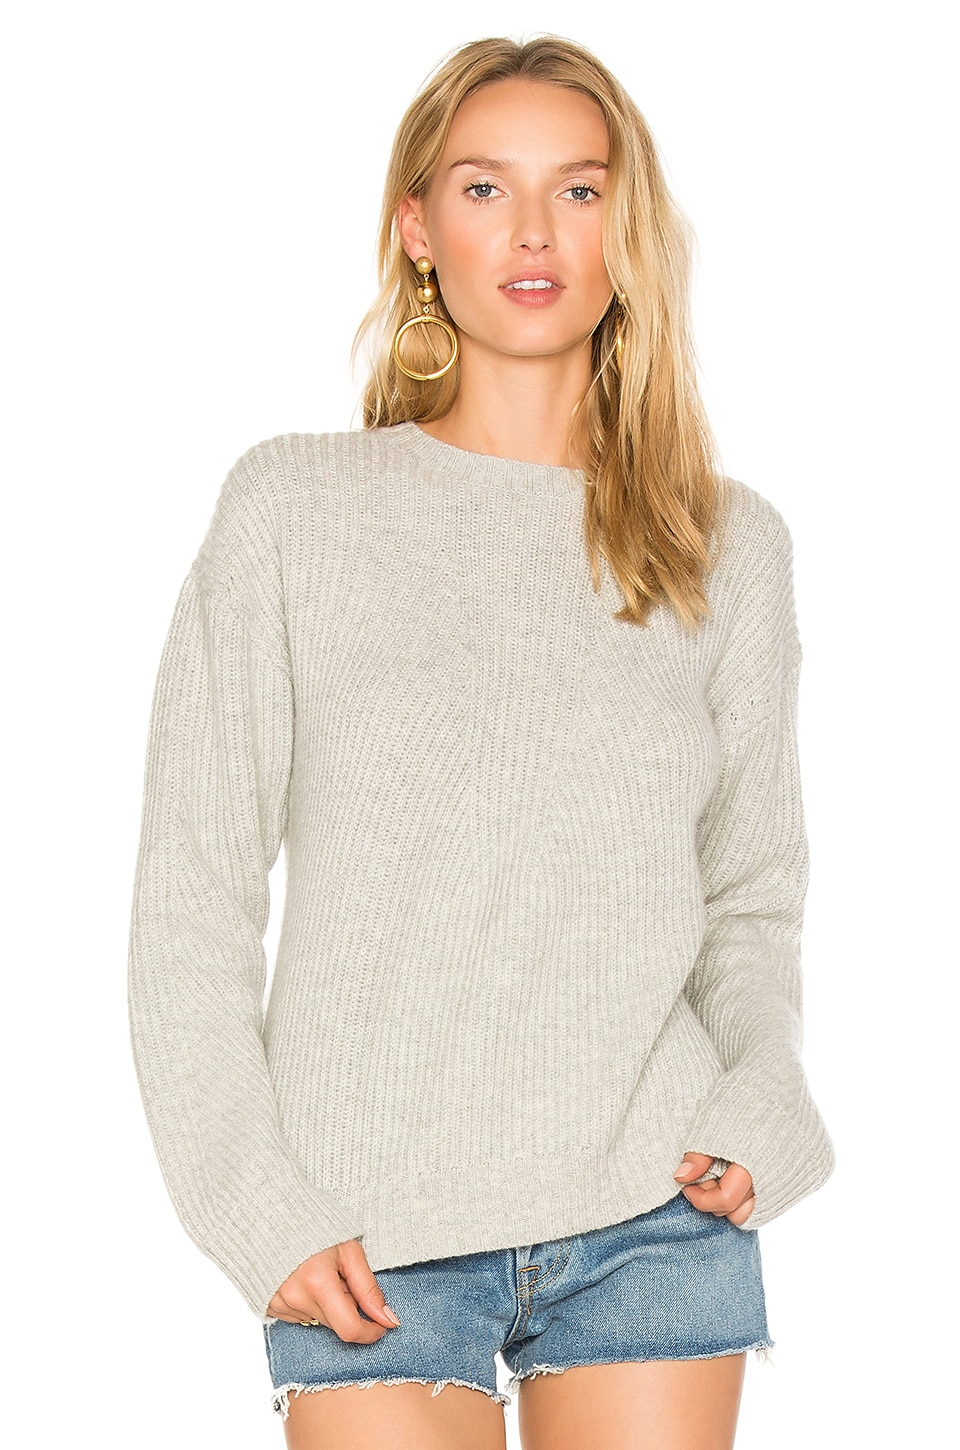 House of Harlow 1960 x REVOLVE Quinn Sweater in Misty